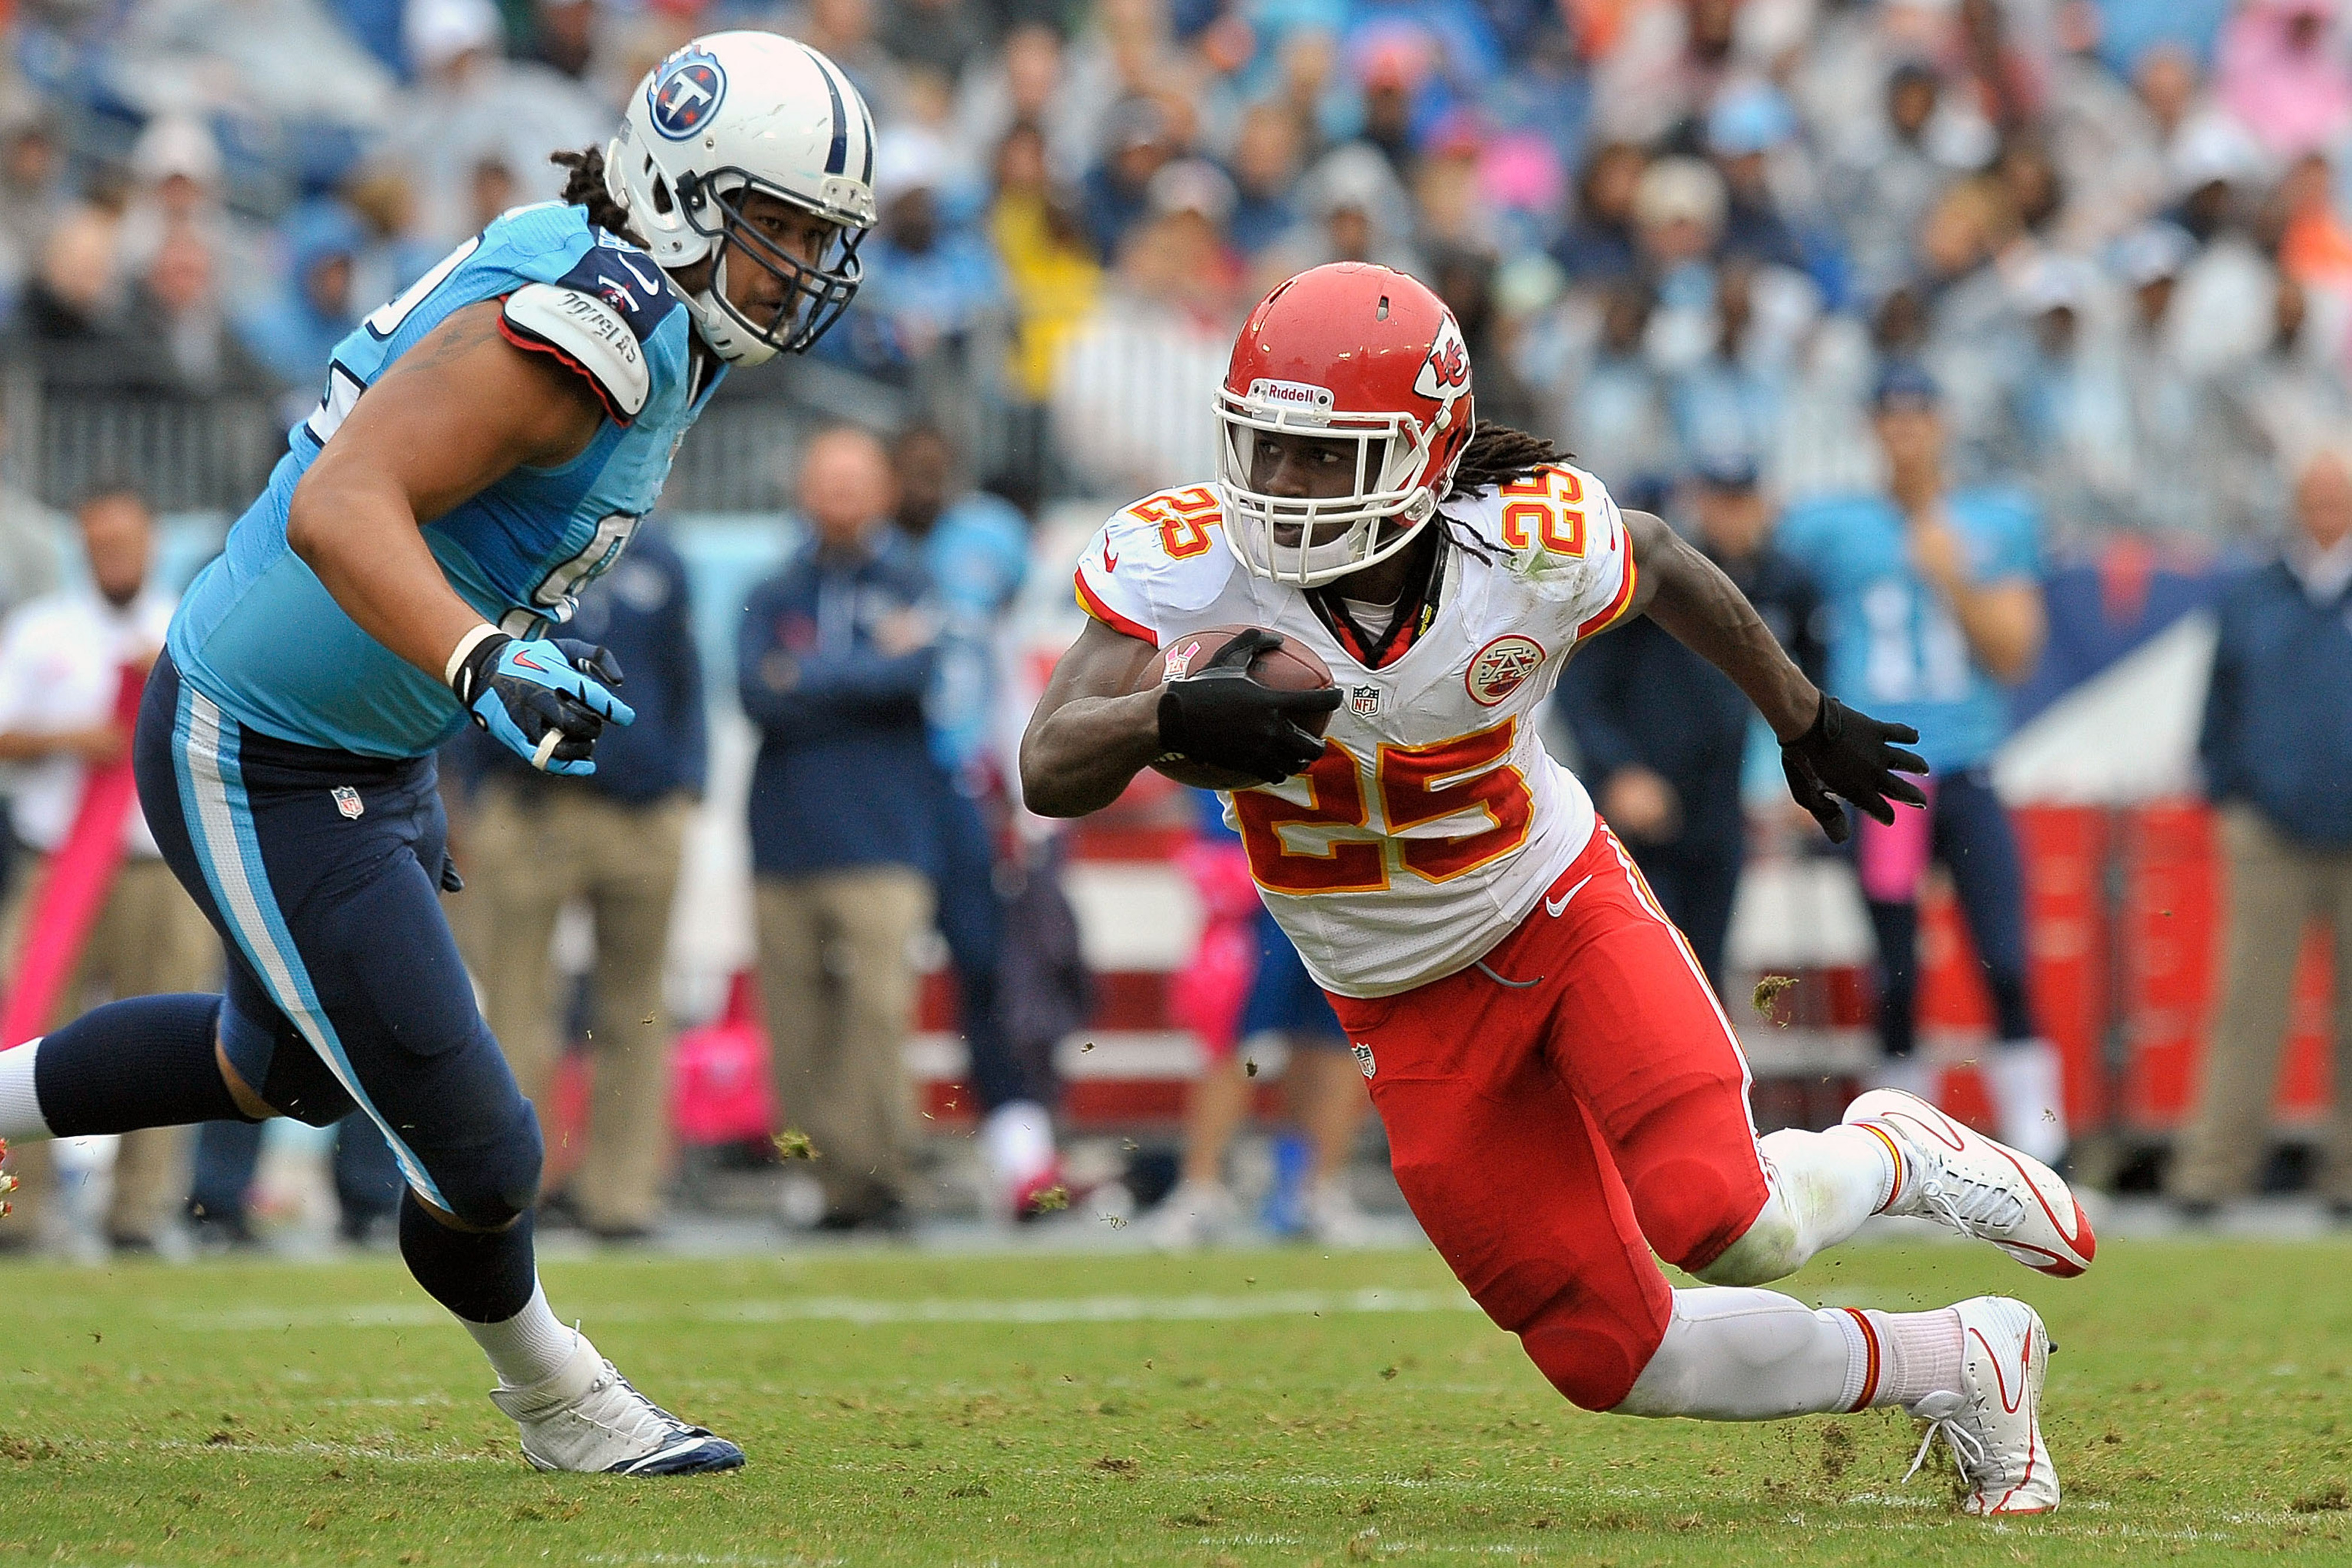 Chiefs vs. Titans 2013 game recap: Kansas City holds off Tennessee, 26-17, to stay undefeated